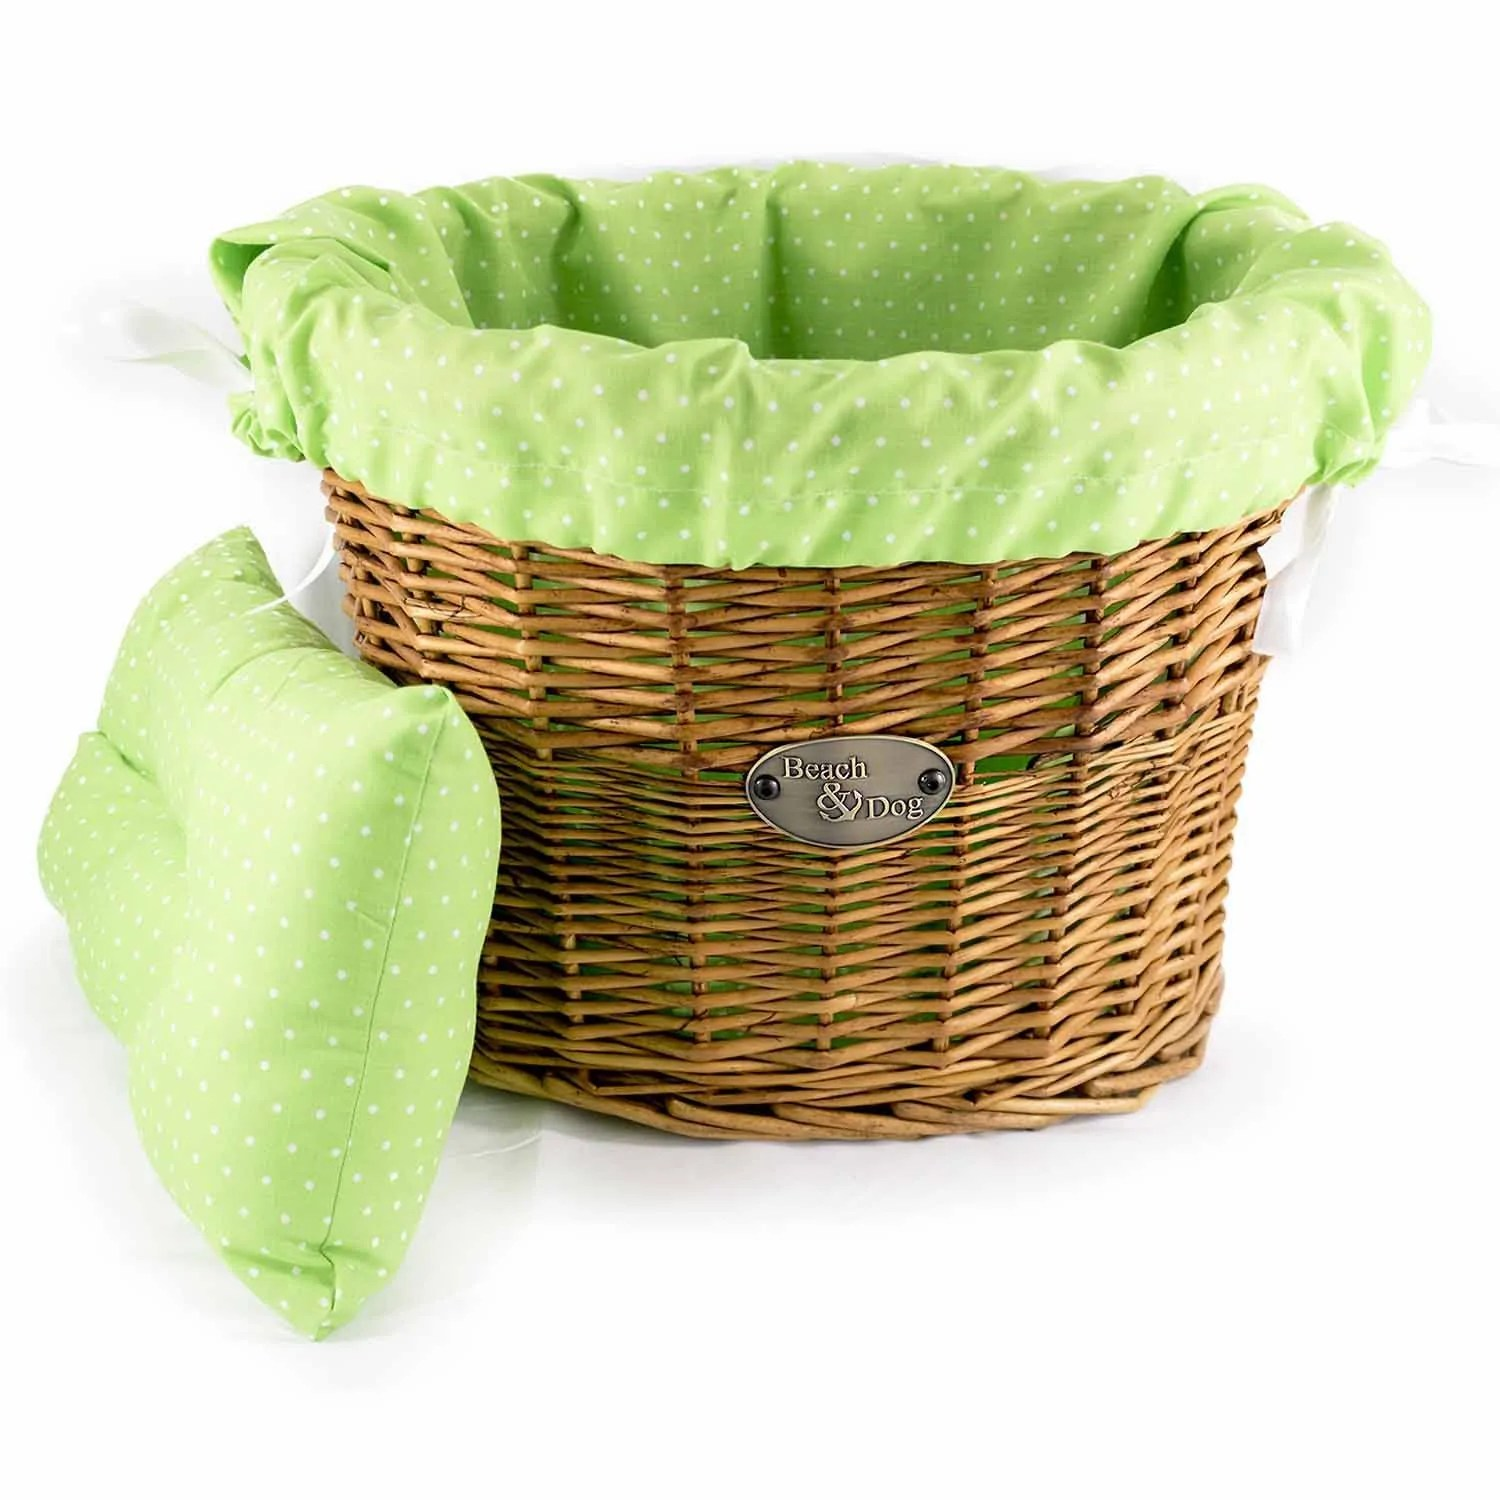 White Hamper With Liner Light Green With White Polka Dots Basket Liner Beach